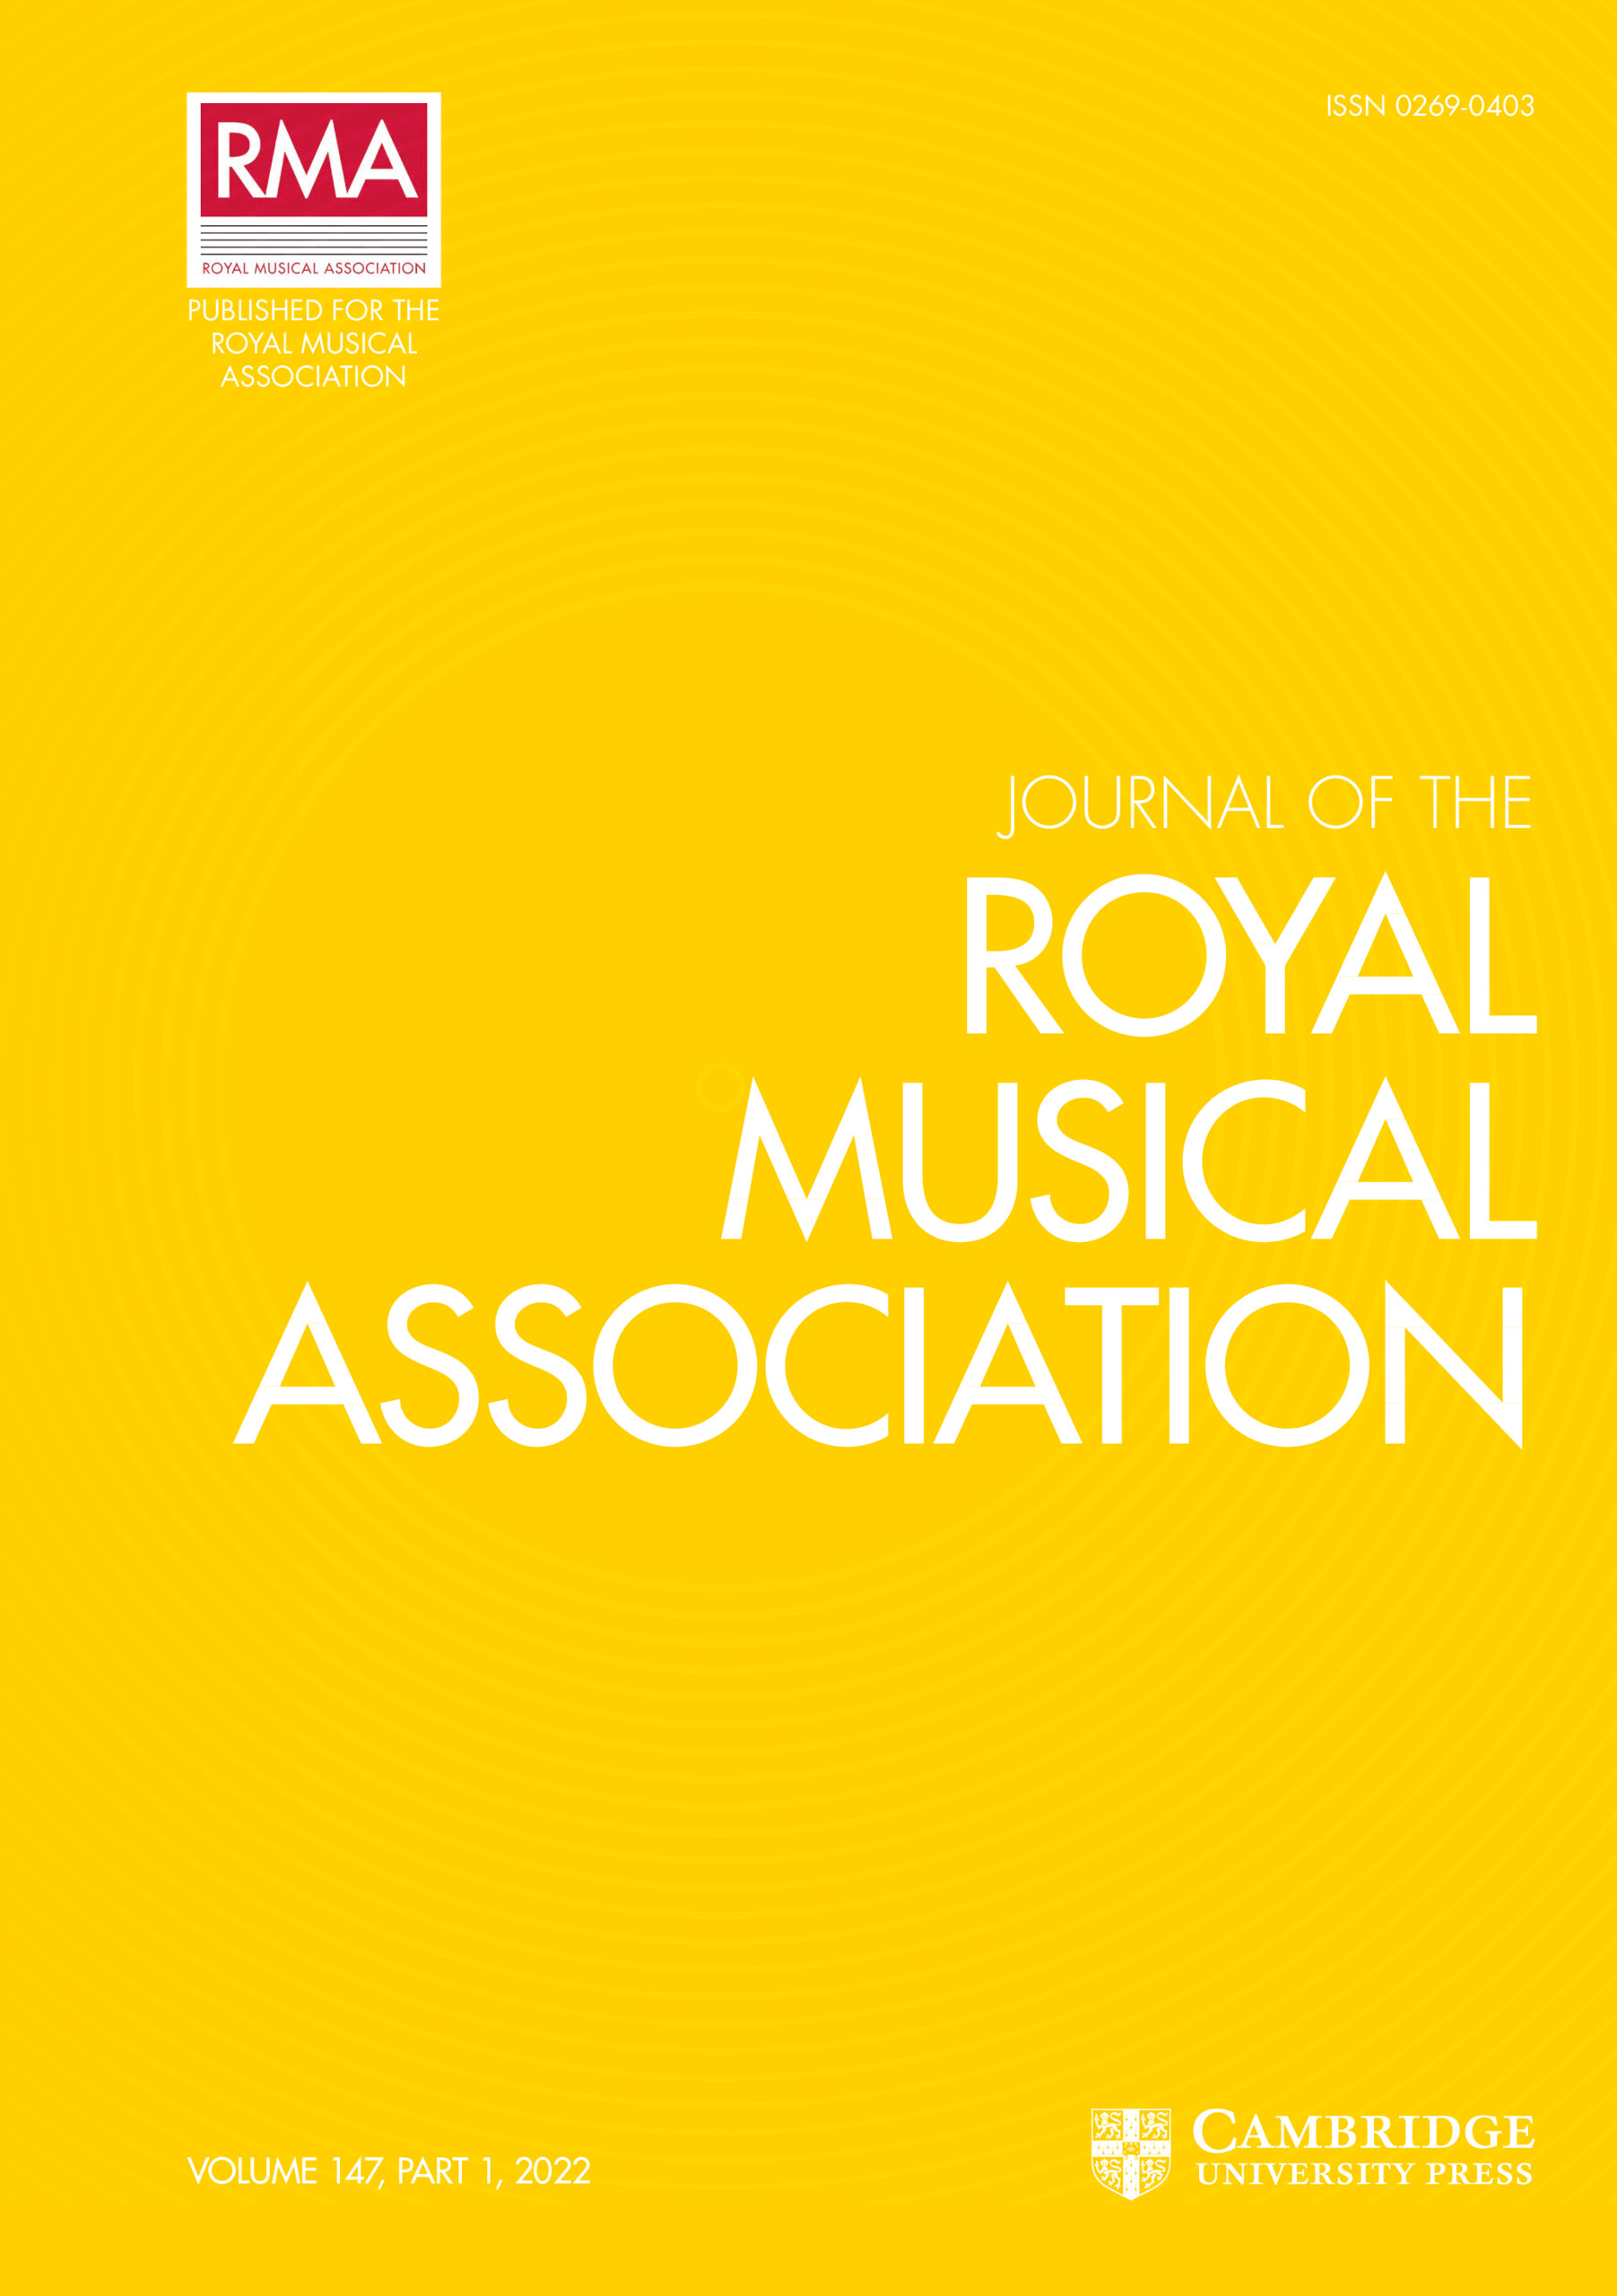 Journal of the Royal Musical Association